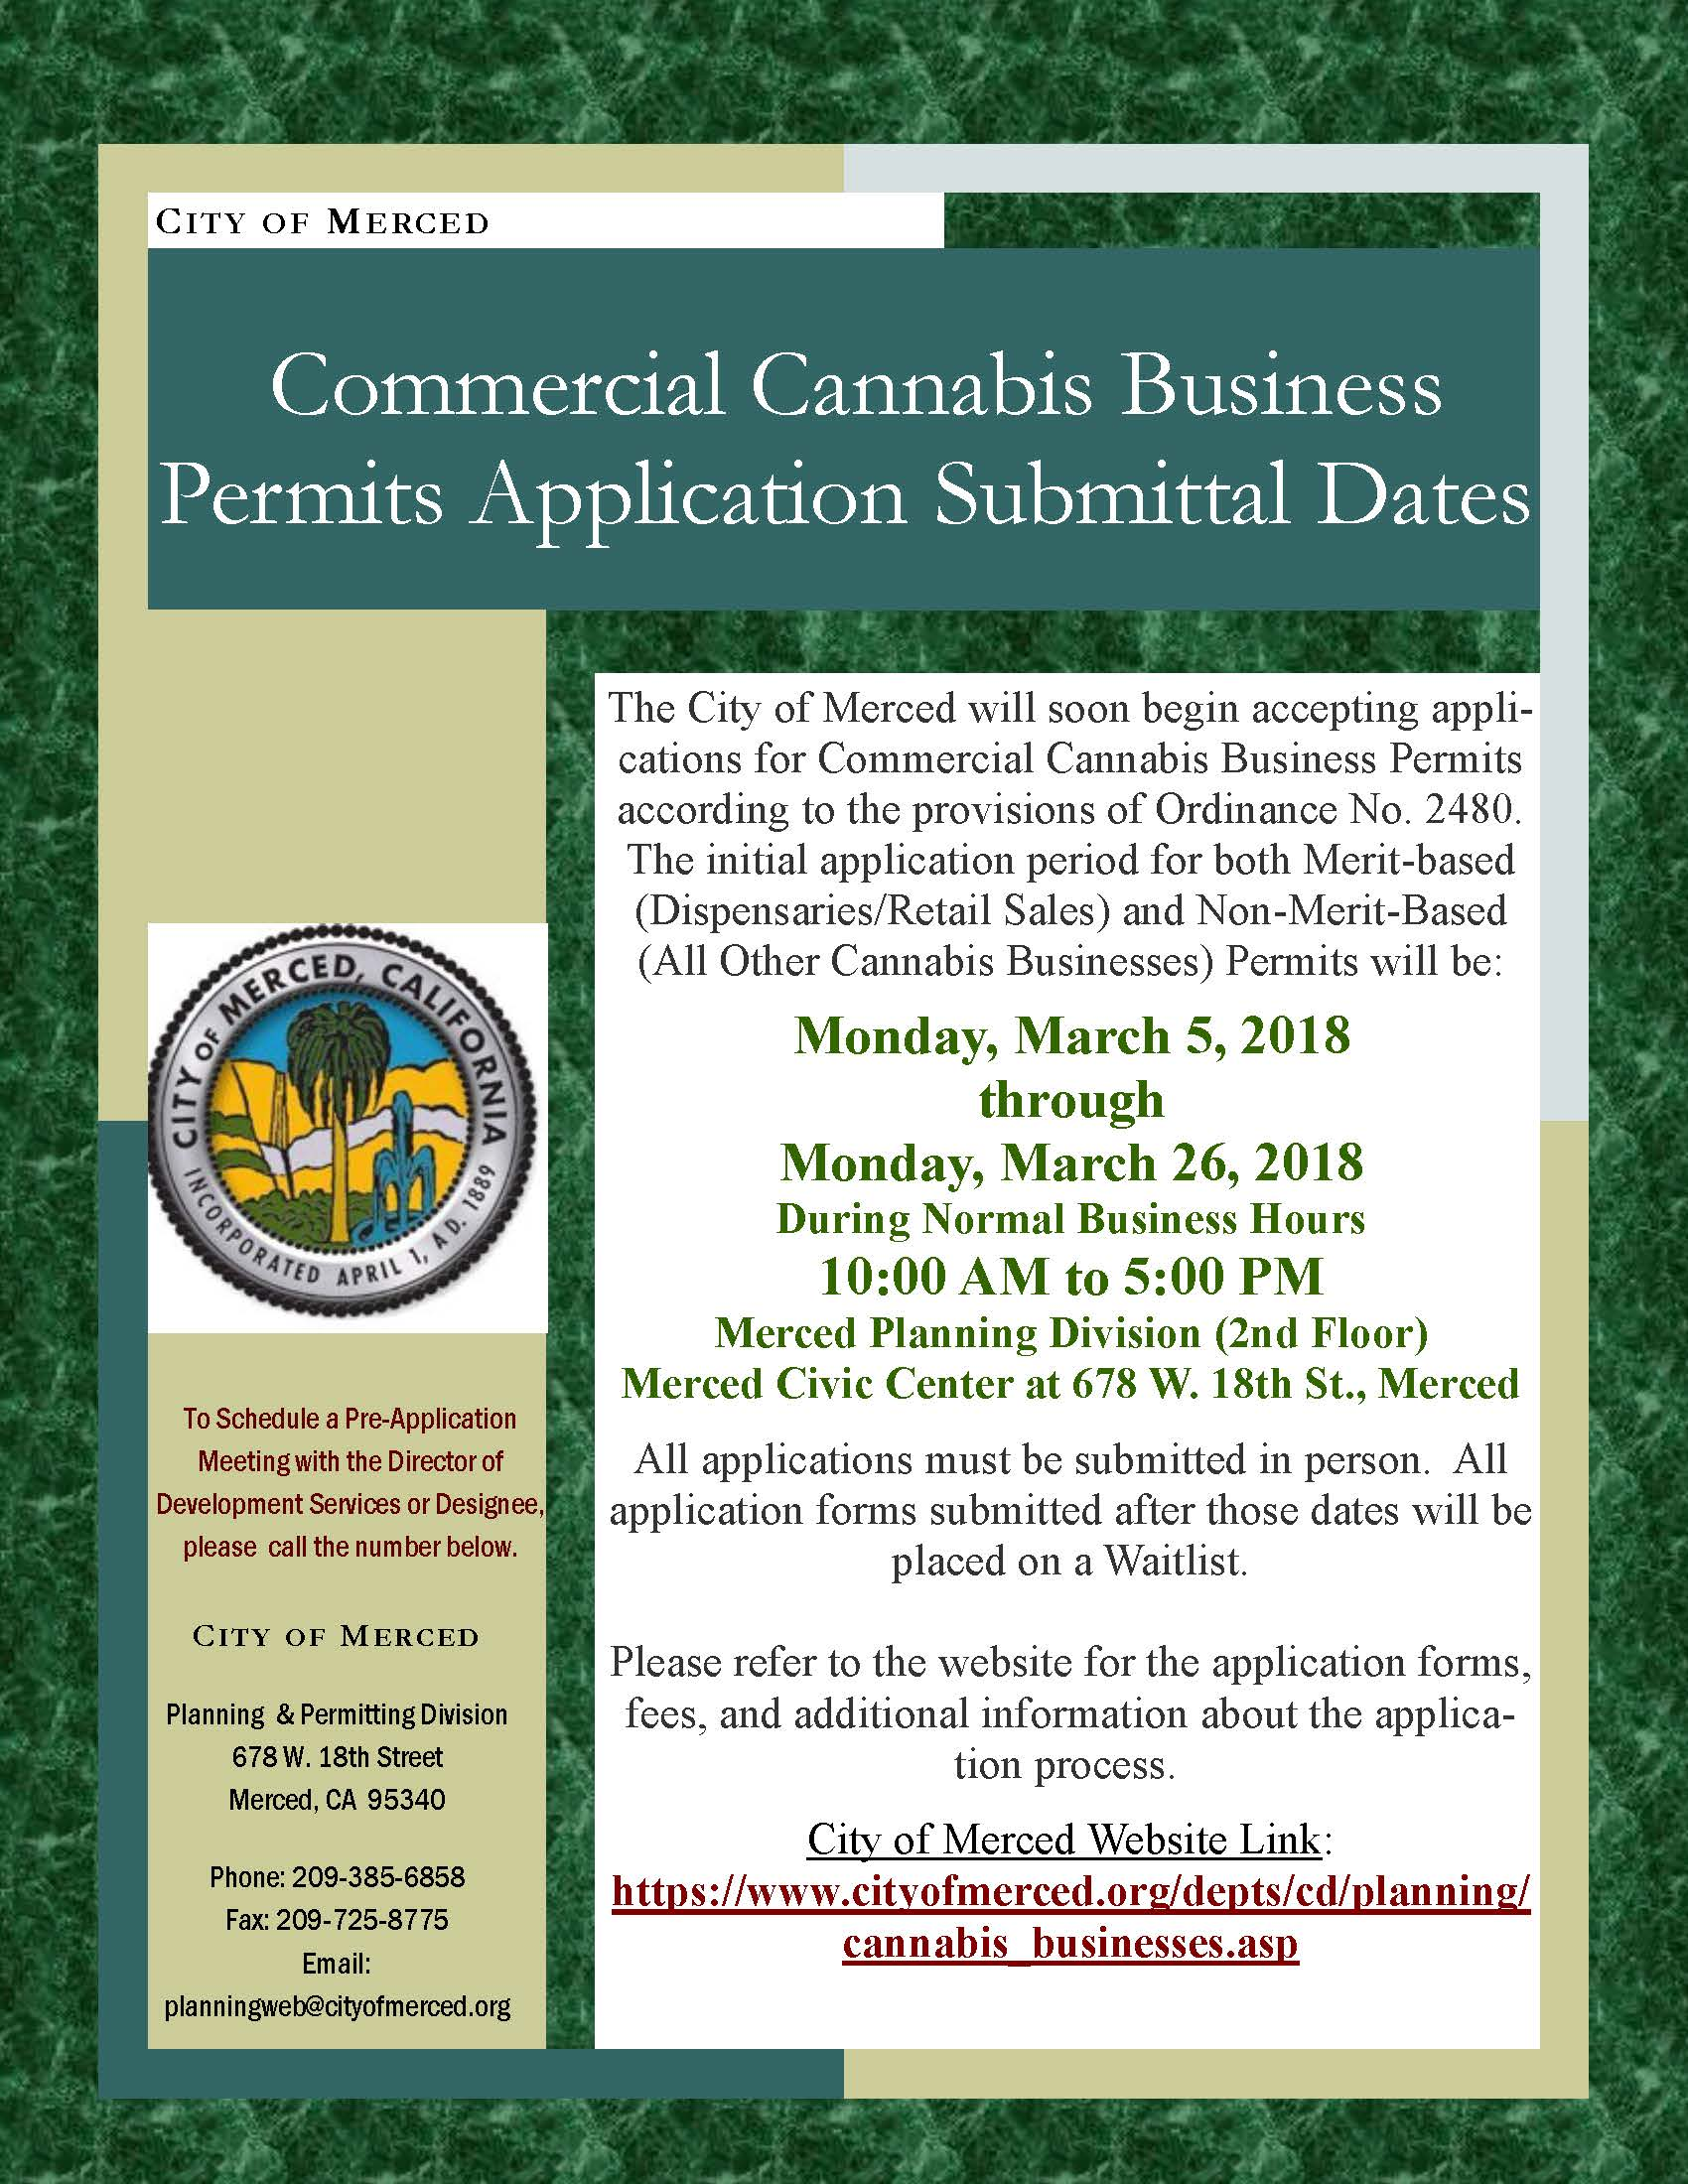 Commercial Cannabis Business Permits Application Submittal Dates flyer